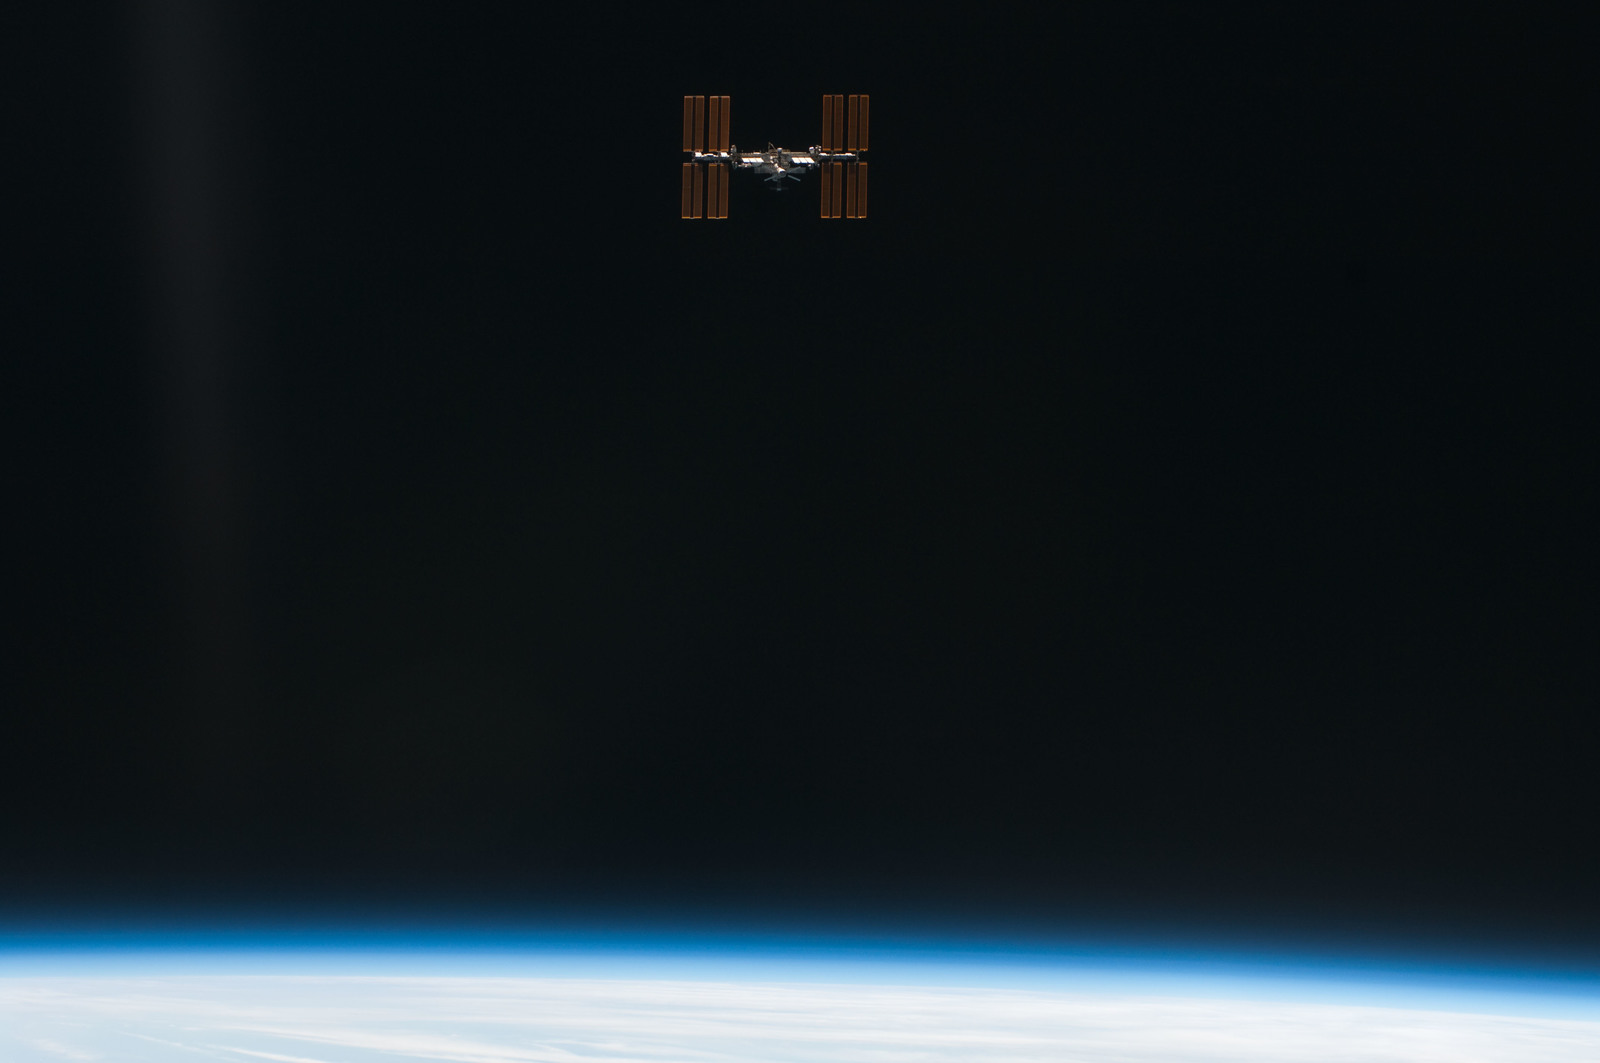 S134E011472 - STS-134 - Overall view of ISS